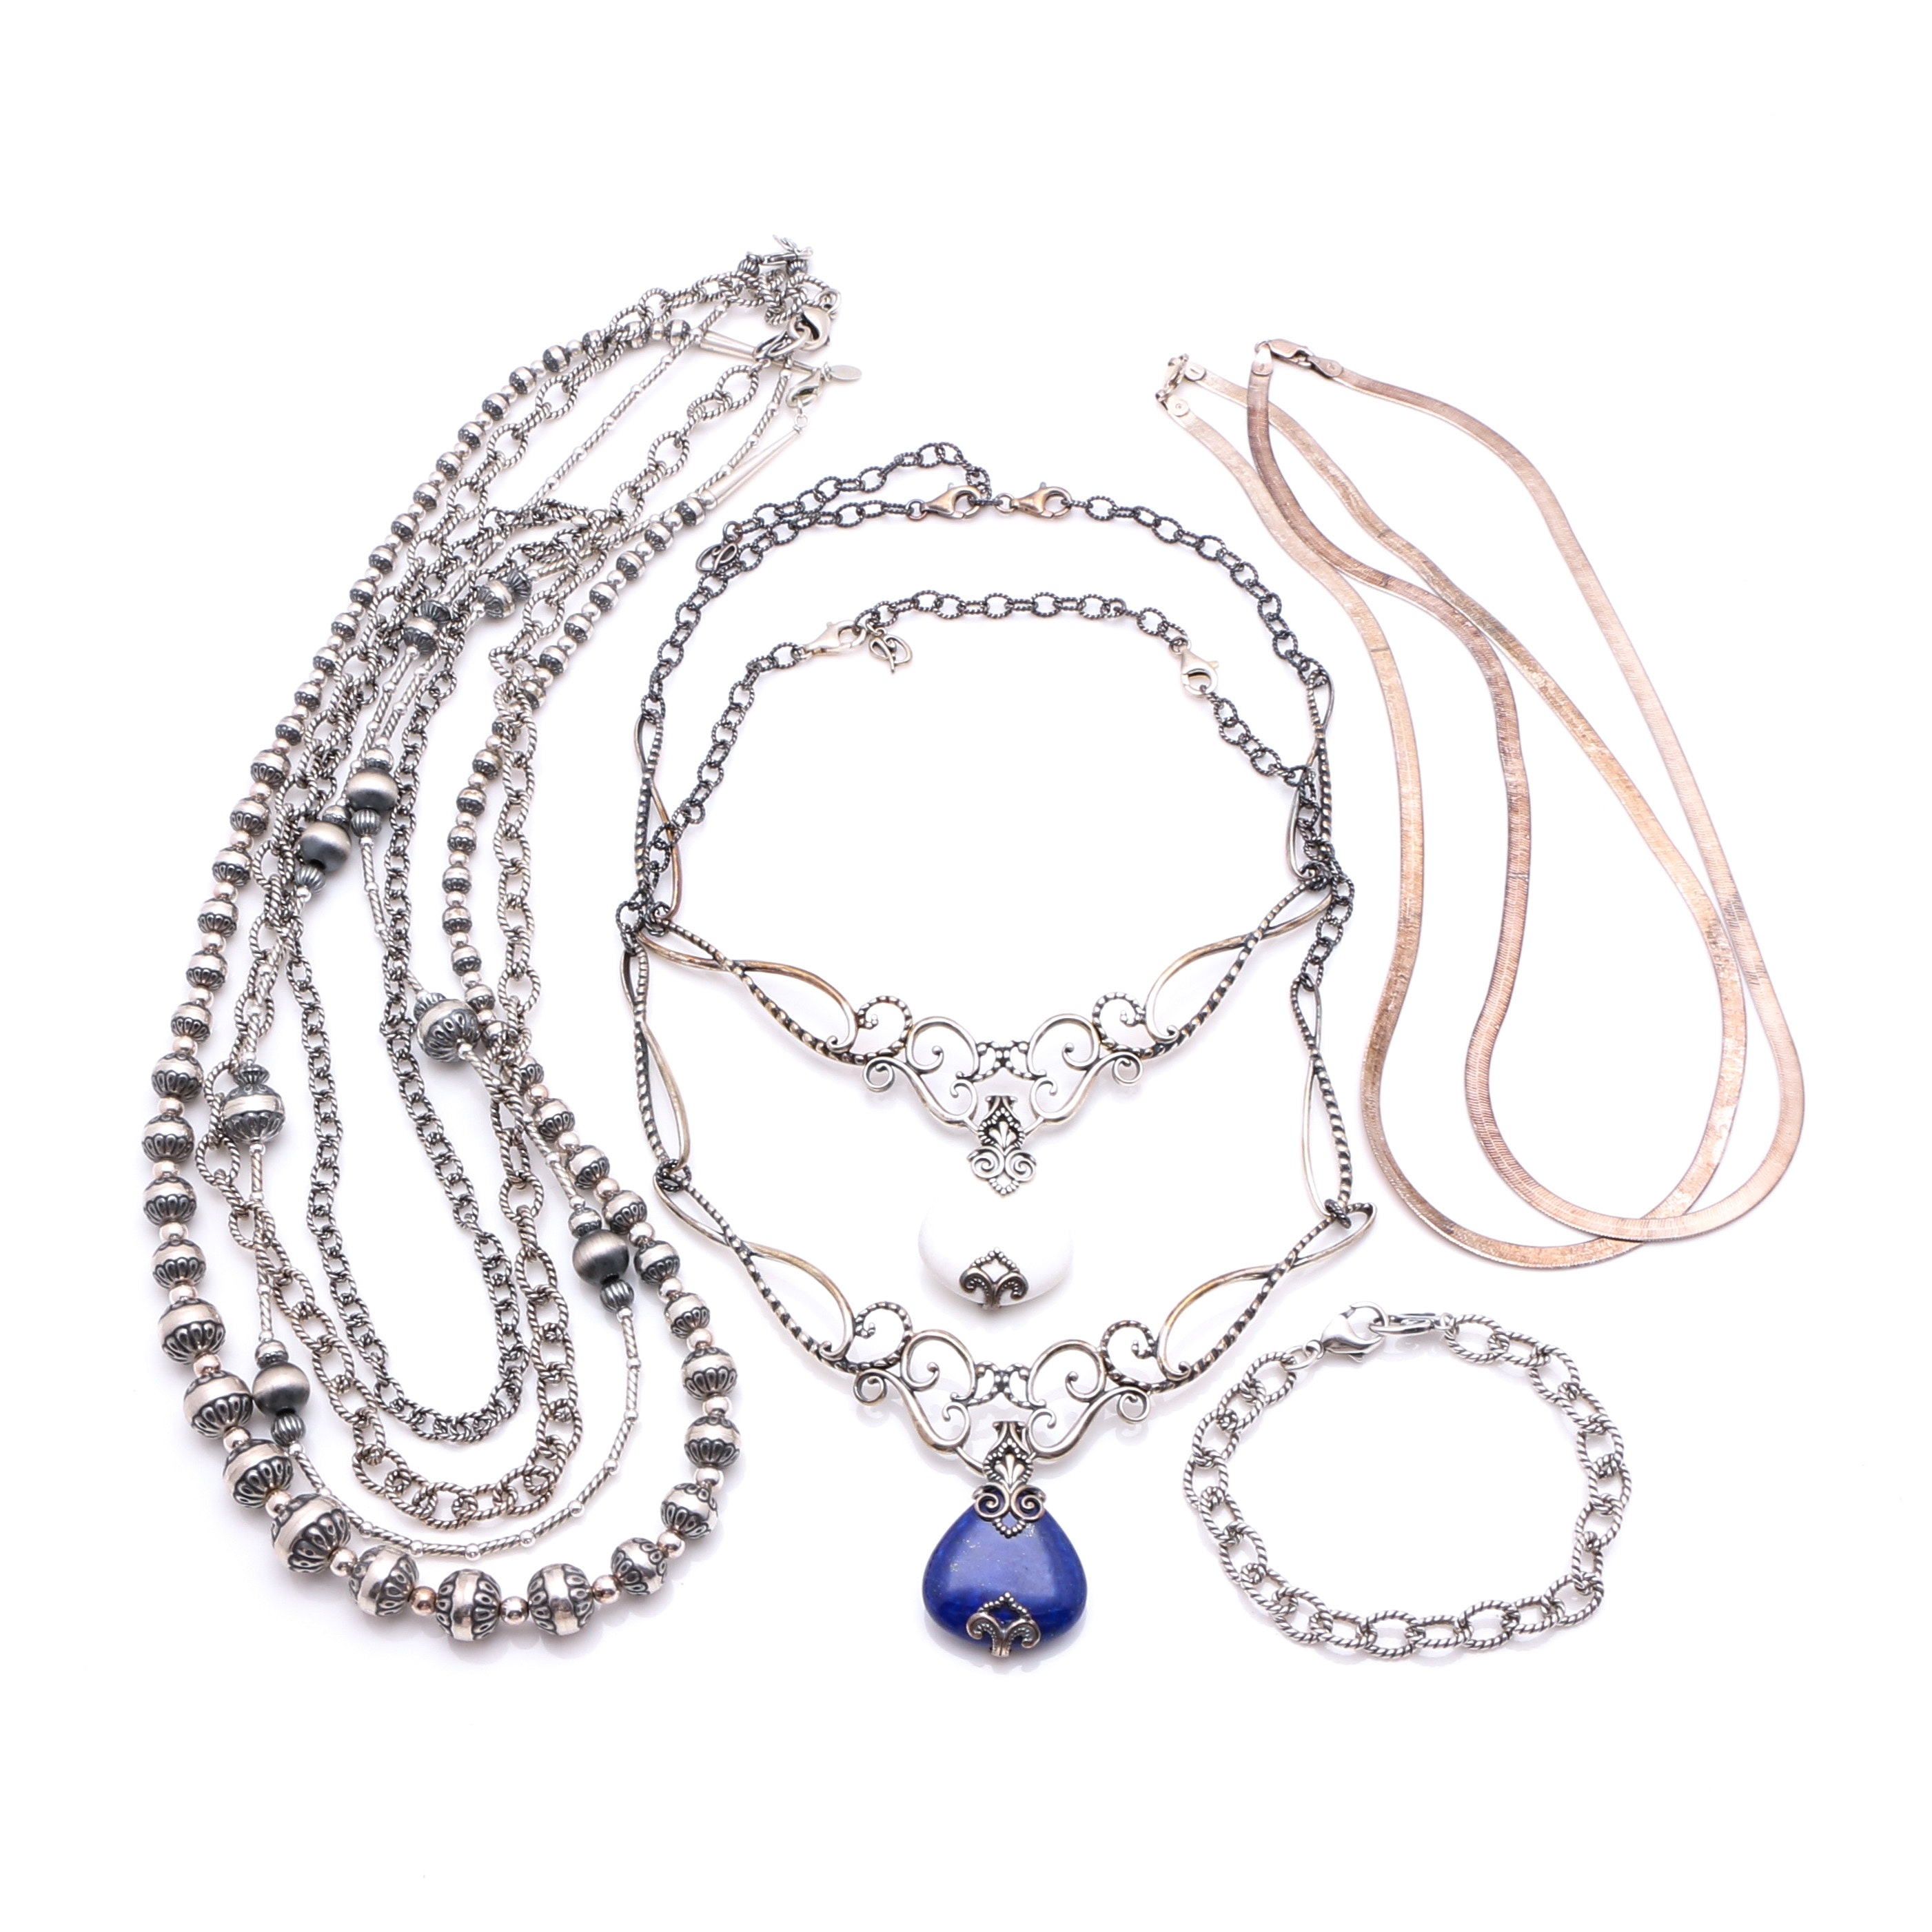 Assortment of Sterling Jewelry including Carolyn Pollack